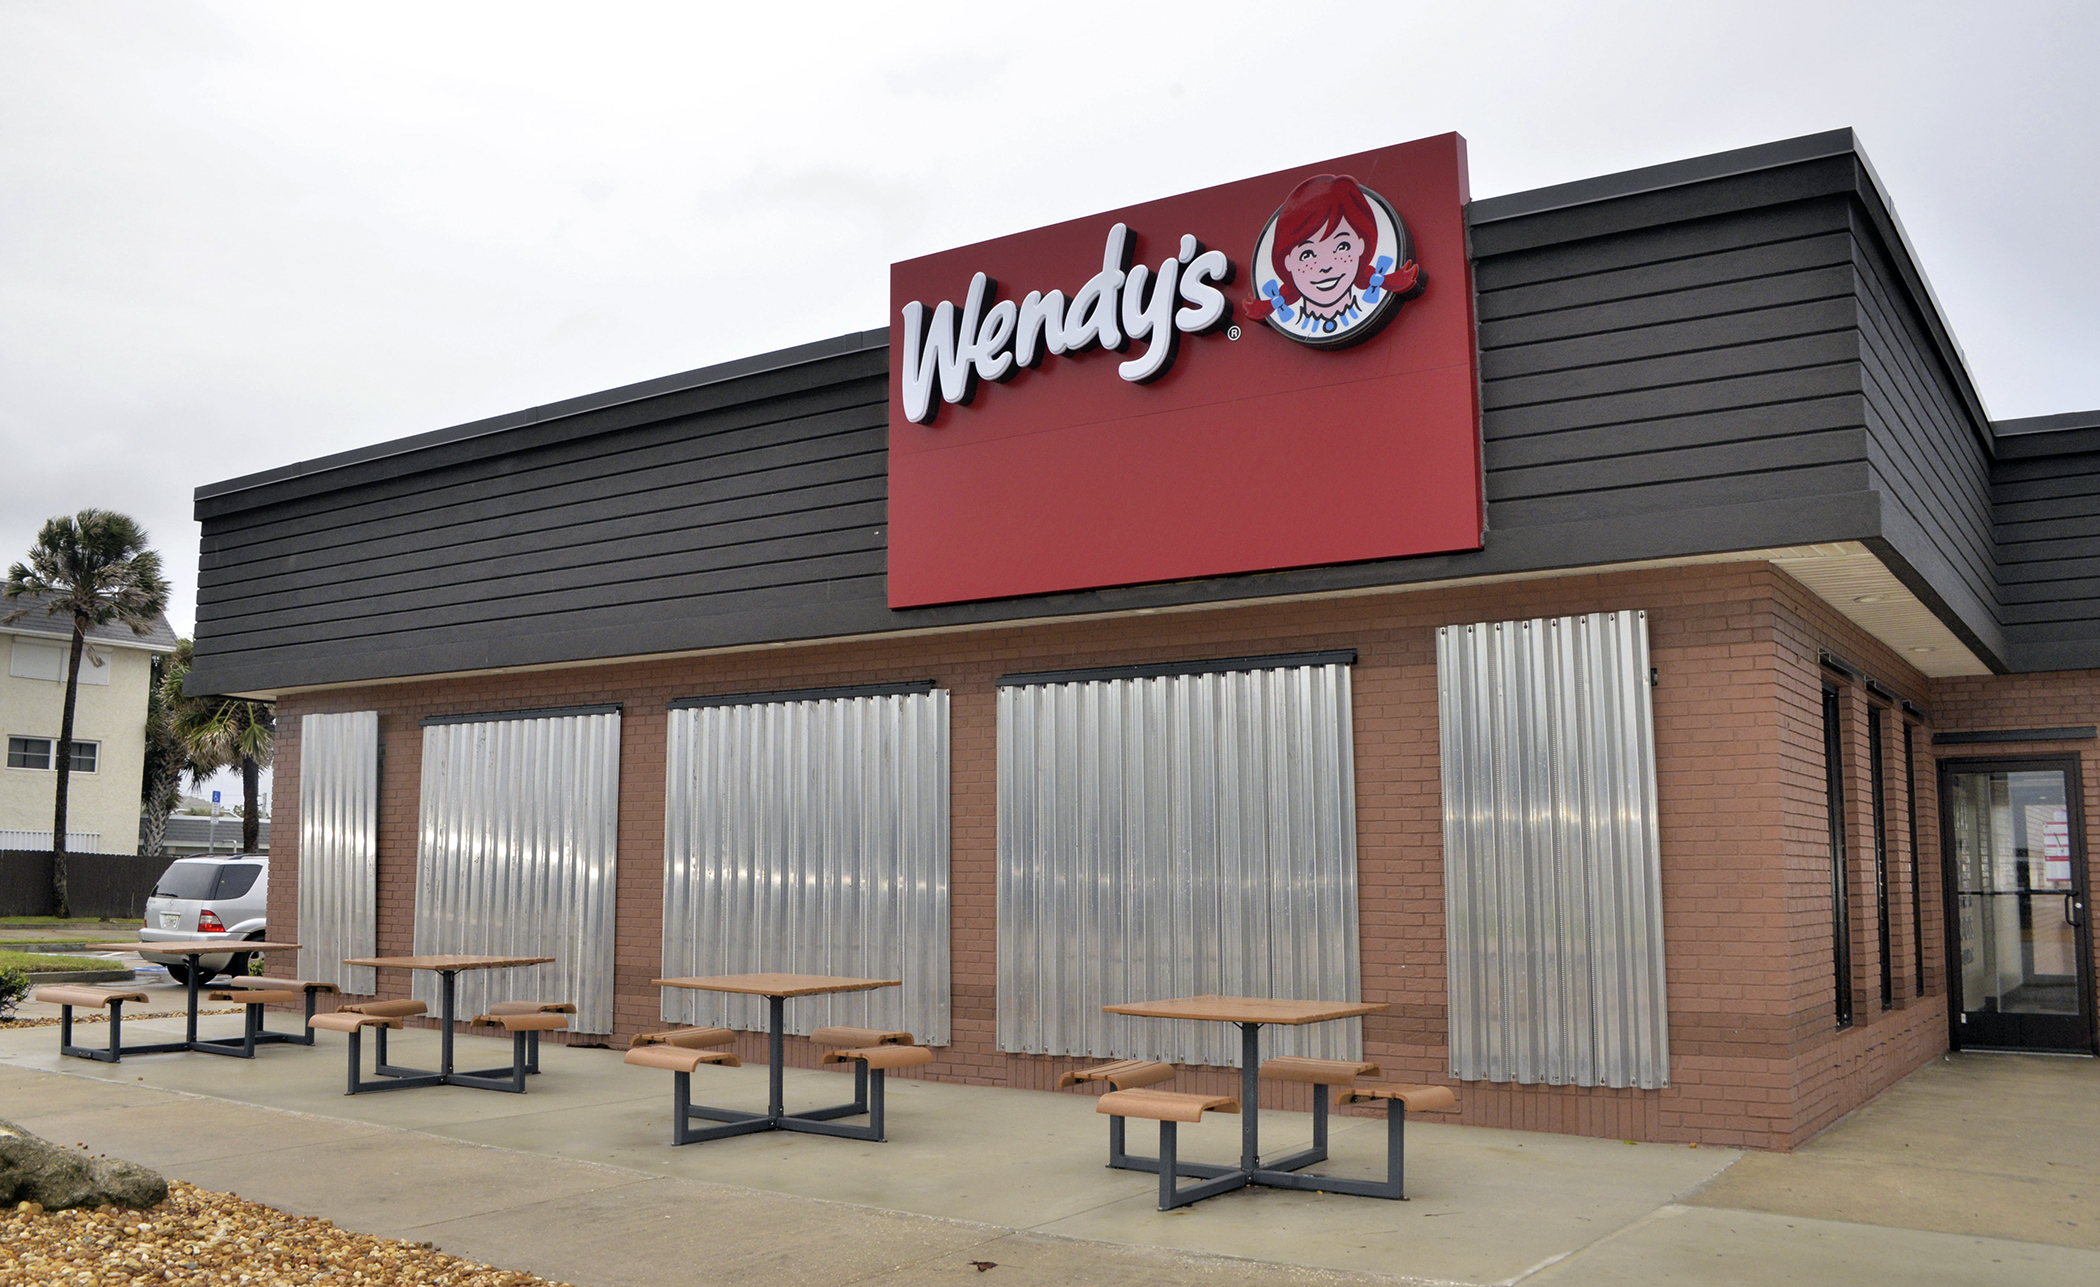 A Wendy's restaurant in  Indialantic is closed for the coming hurricane on October 6, 2016. Hotels and businesses in Florida cities and towns like Indialantic, Melbourne and Melbourne Beach are closed, and people stock water, food and gas to be prepared for the potentially devastating storm.